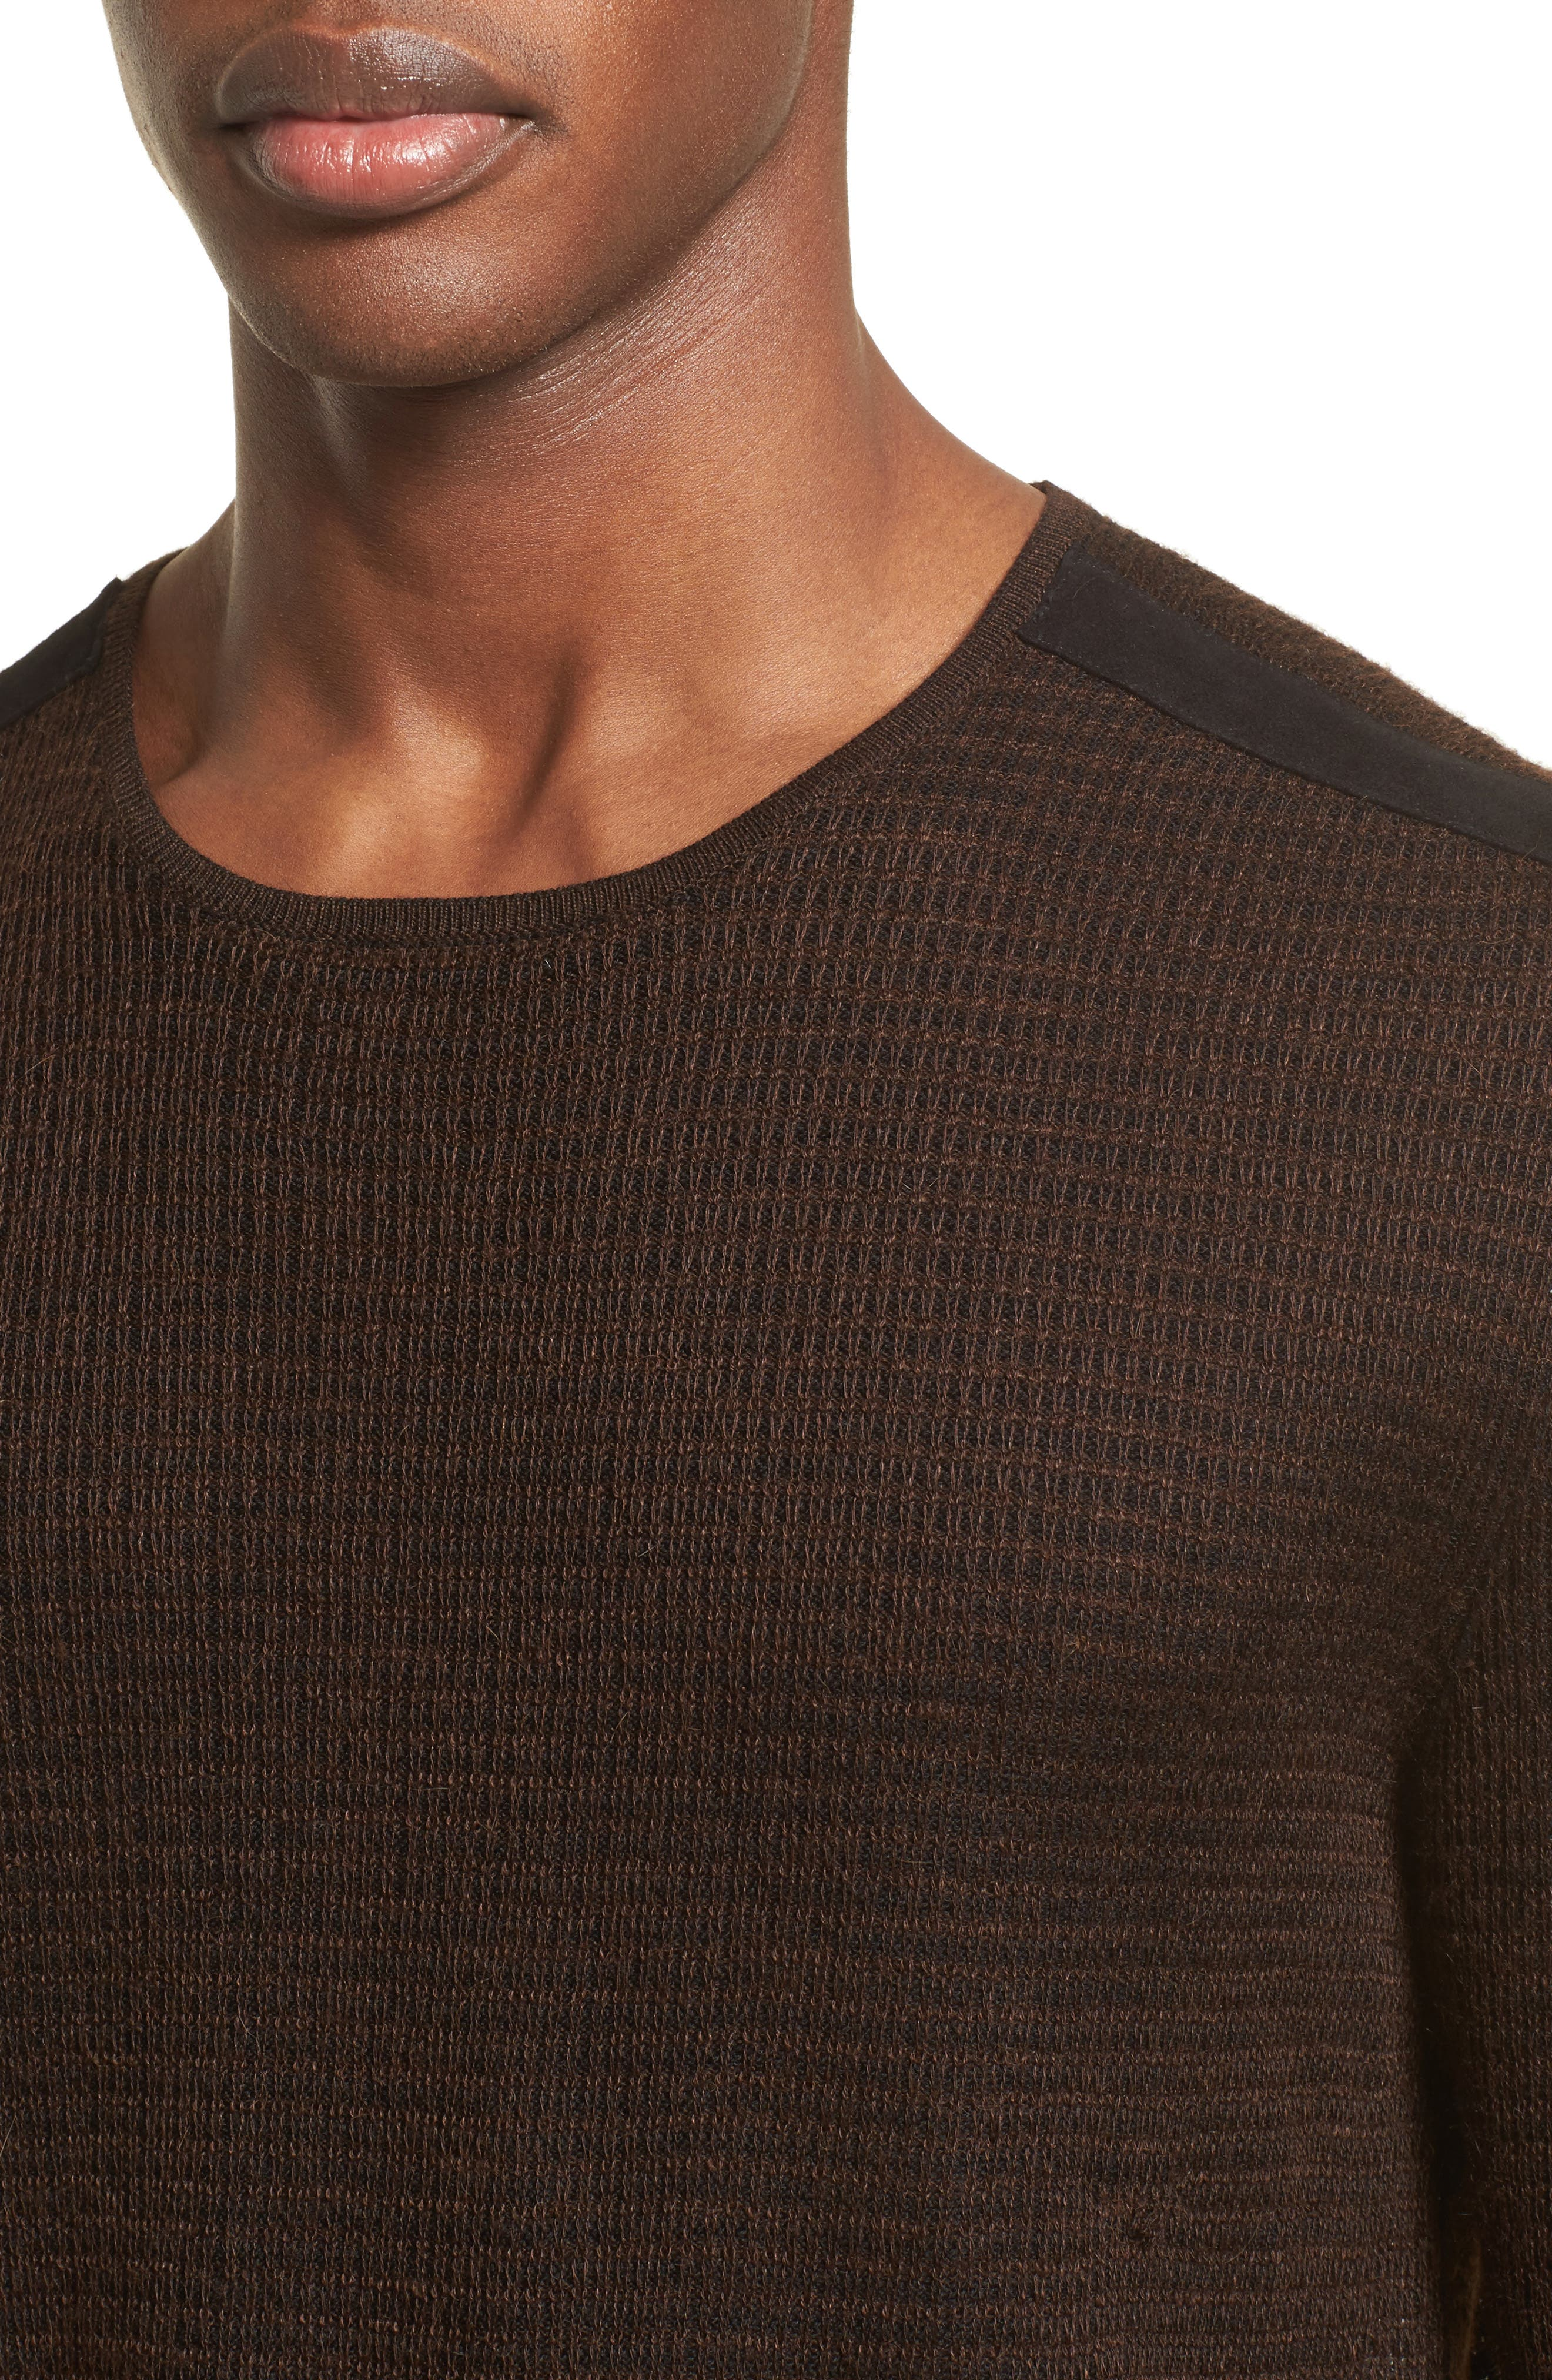 Waffle Knit Sweater,                             Alternate thumbnail 4, color,                             Wood Brown